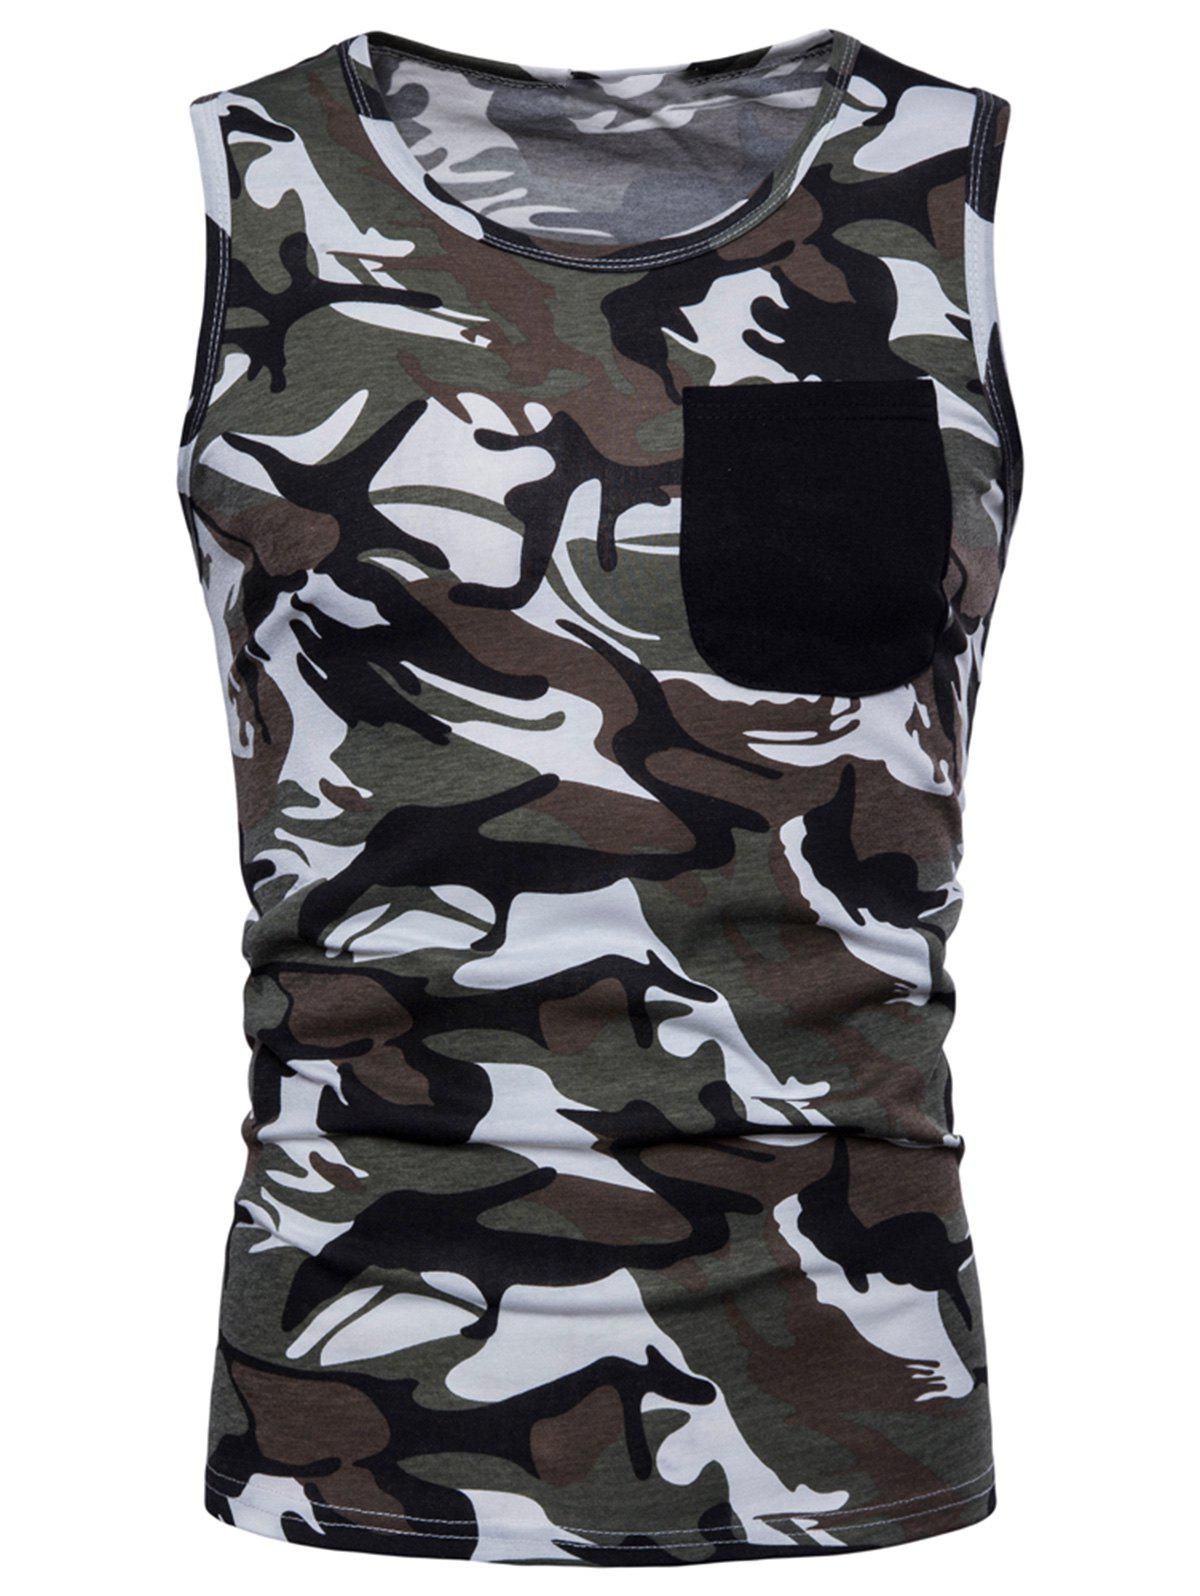 Latest Pocket Camo Print Tank Top